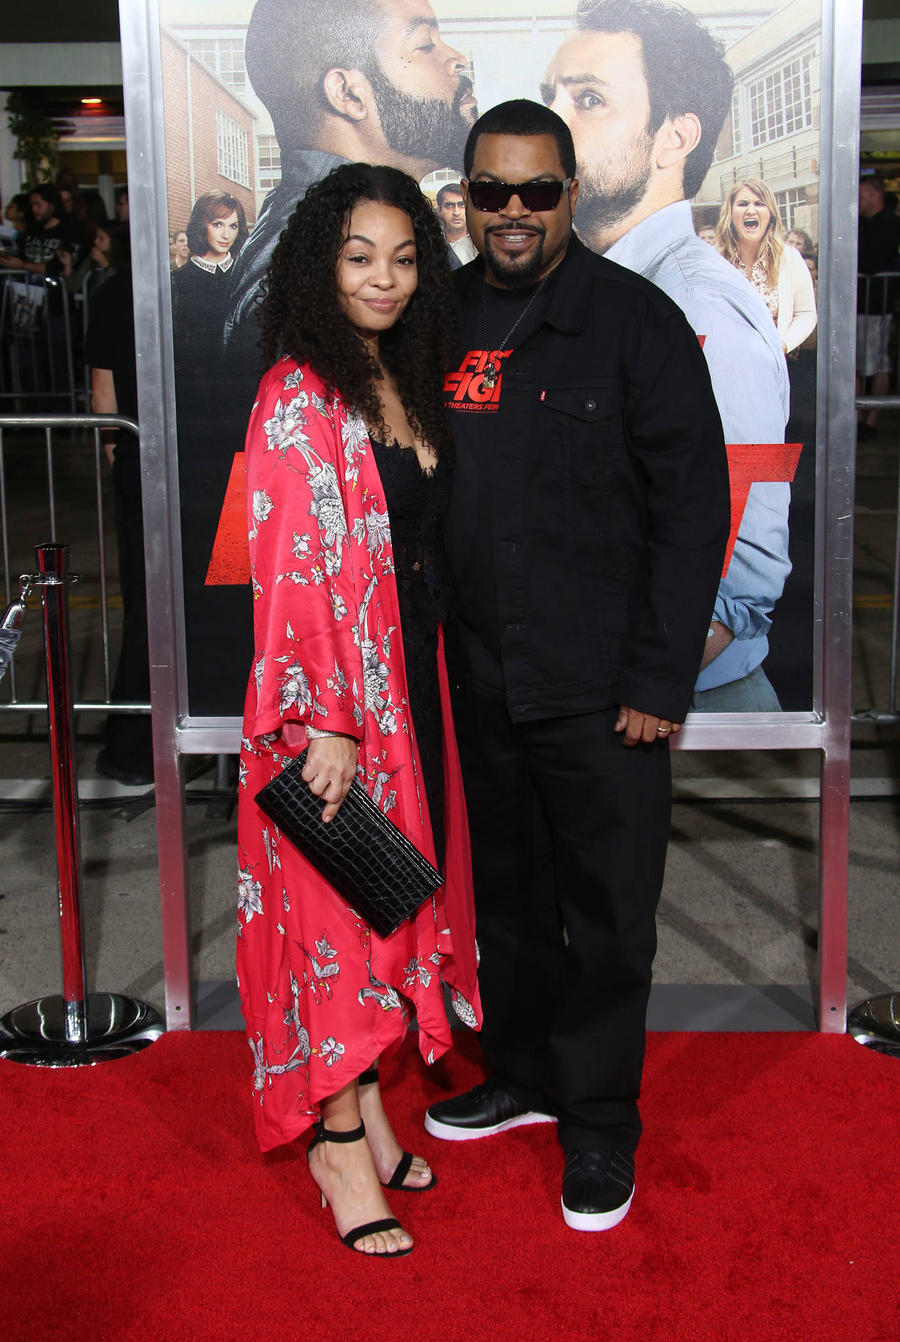 Ice Cube Wins Over His Wife With 'Funky' Purse Gifts